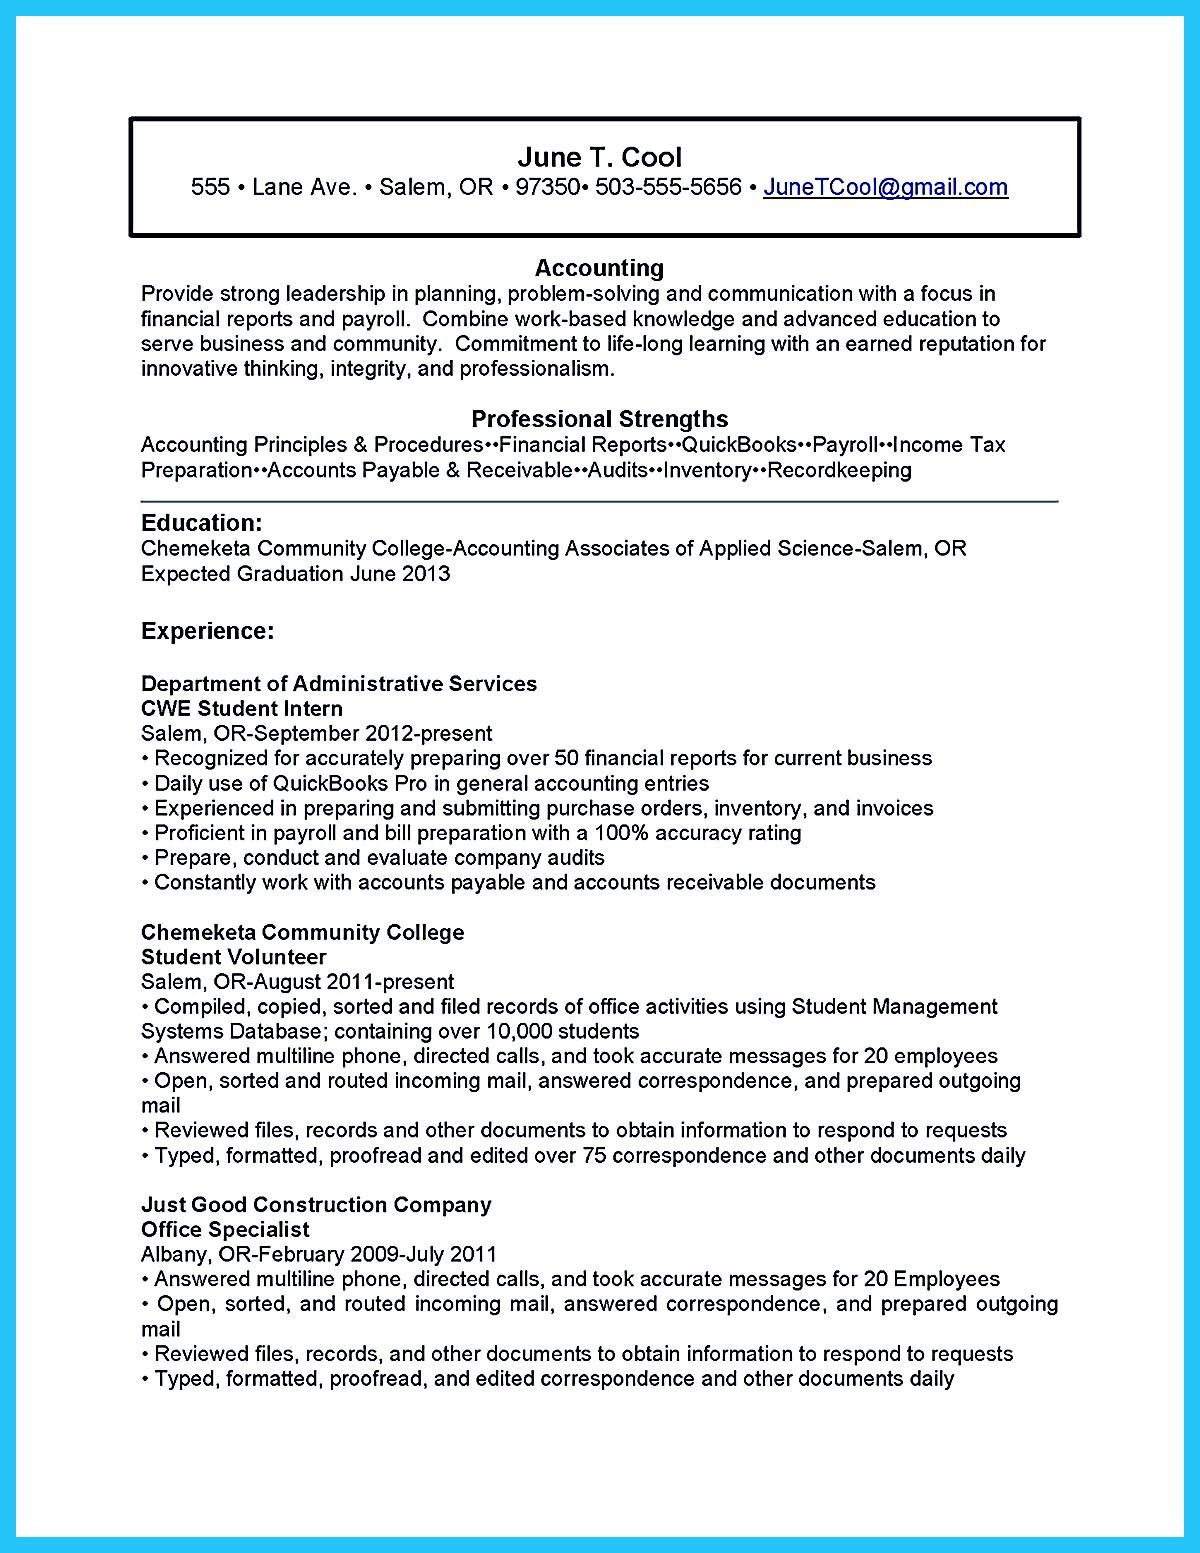 Accounting Student Resume Here Presents How The Resume Of Accounting Student Clearly Made The Accounting Student Resume No Experience Will Focus On T Accoun